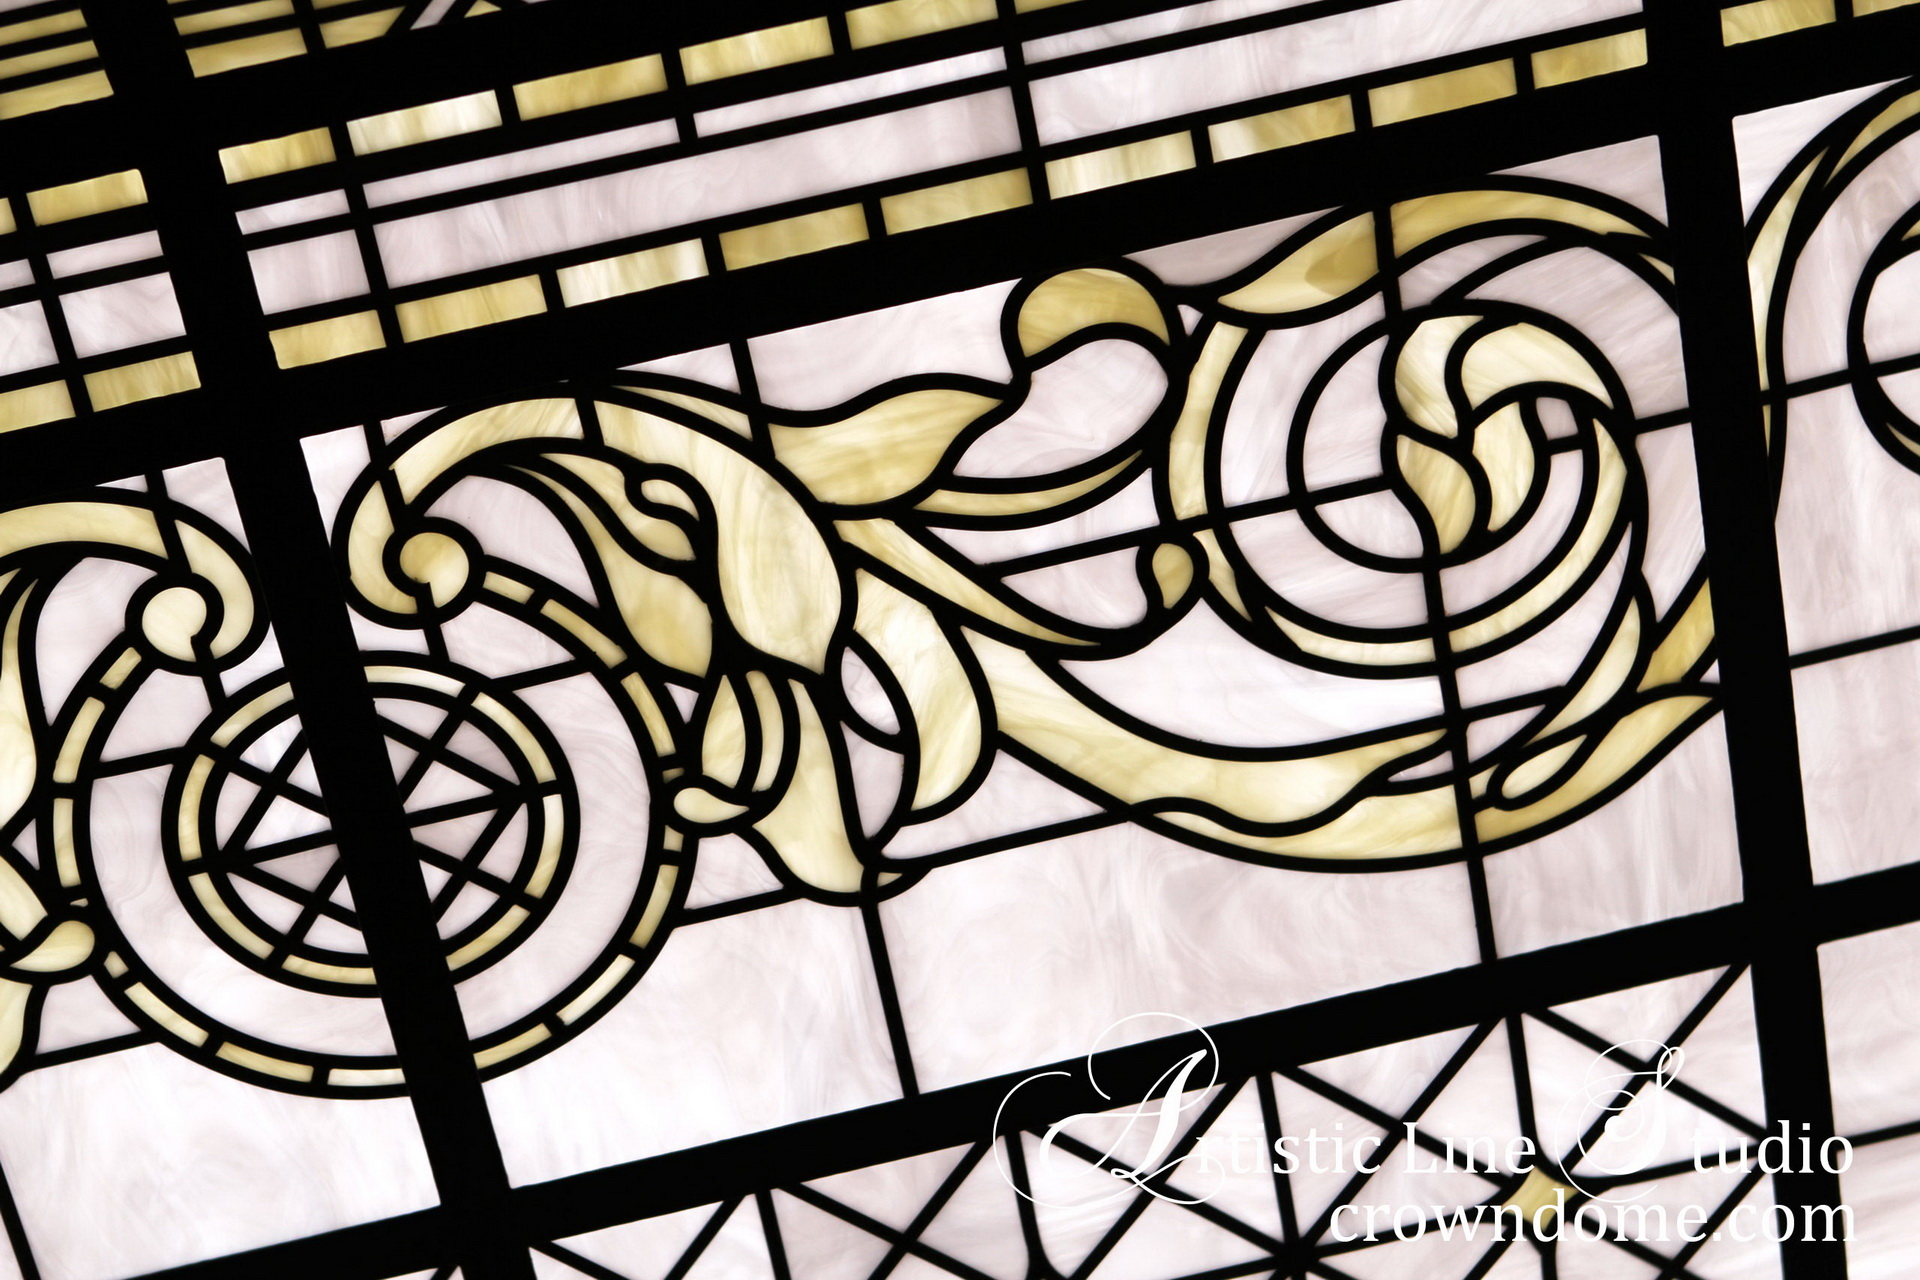 Stained leaded glass skylight ceiling design with rich leaded glass line work design to showcase the tender beauty of white and ivory opal glasses. With the reflection of classical design, the stained and leaded glass skylight design in contemporary style. Stained glass skylight ceiling